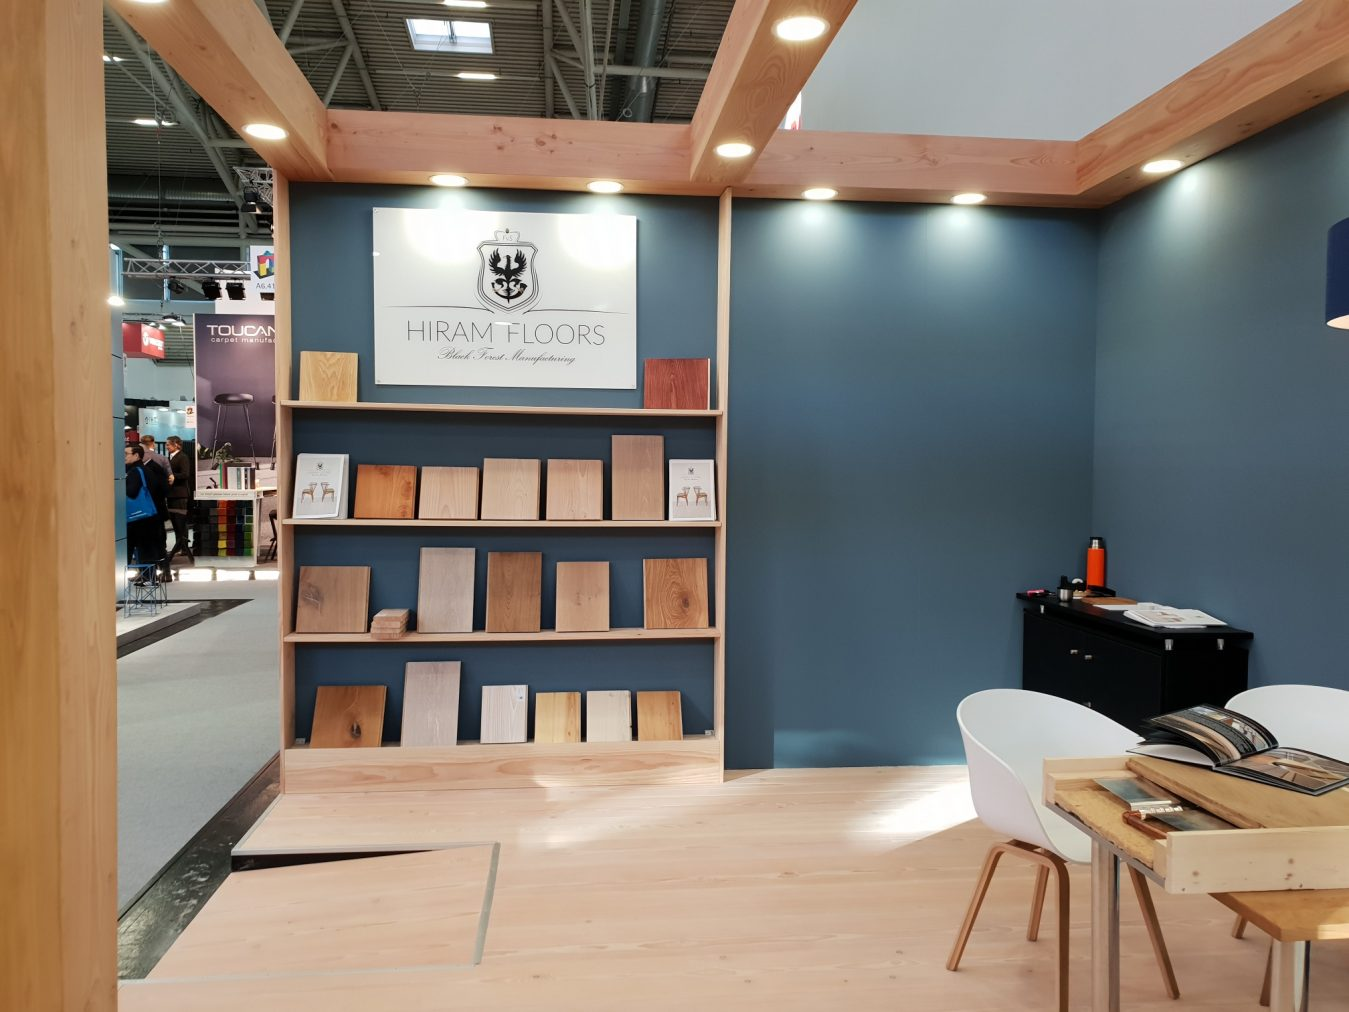 Hiram Floors BAU 2019 (3)